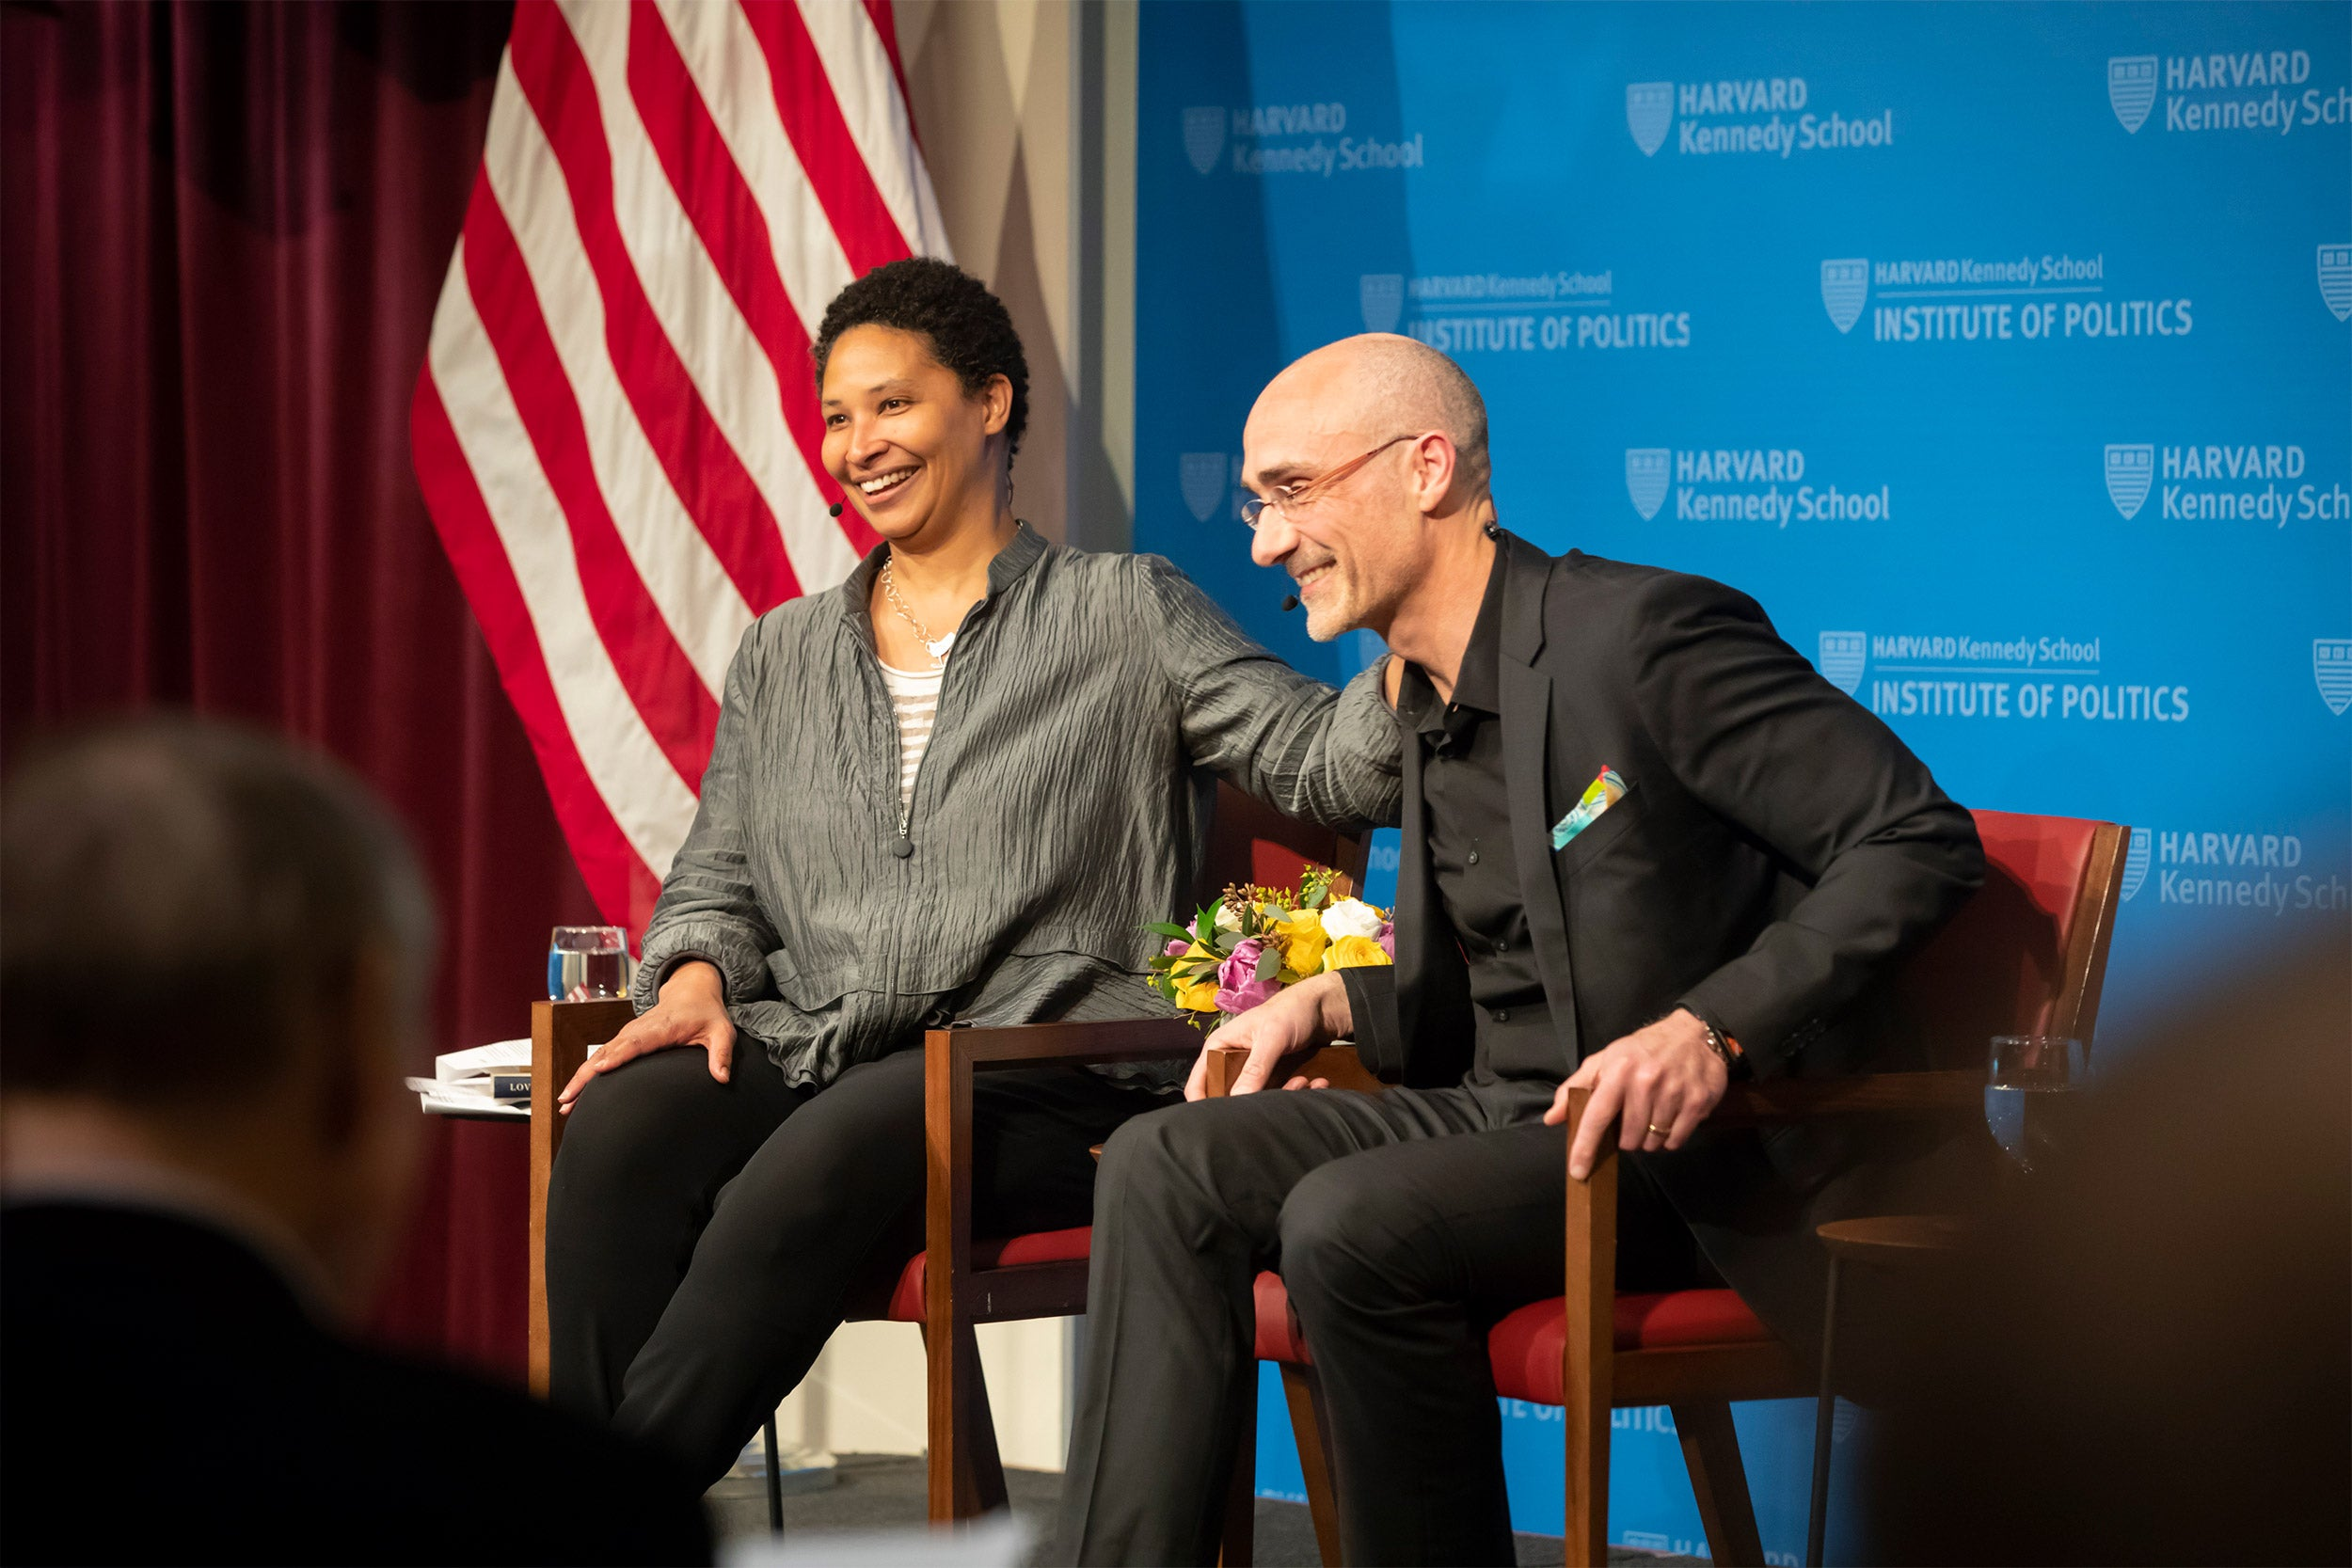 Harvard professors take a lively look at love and politics ...